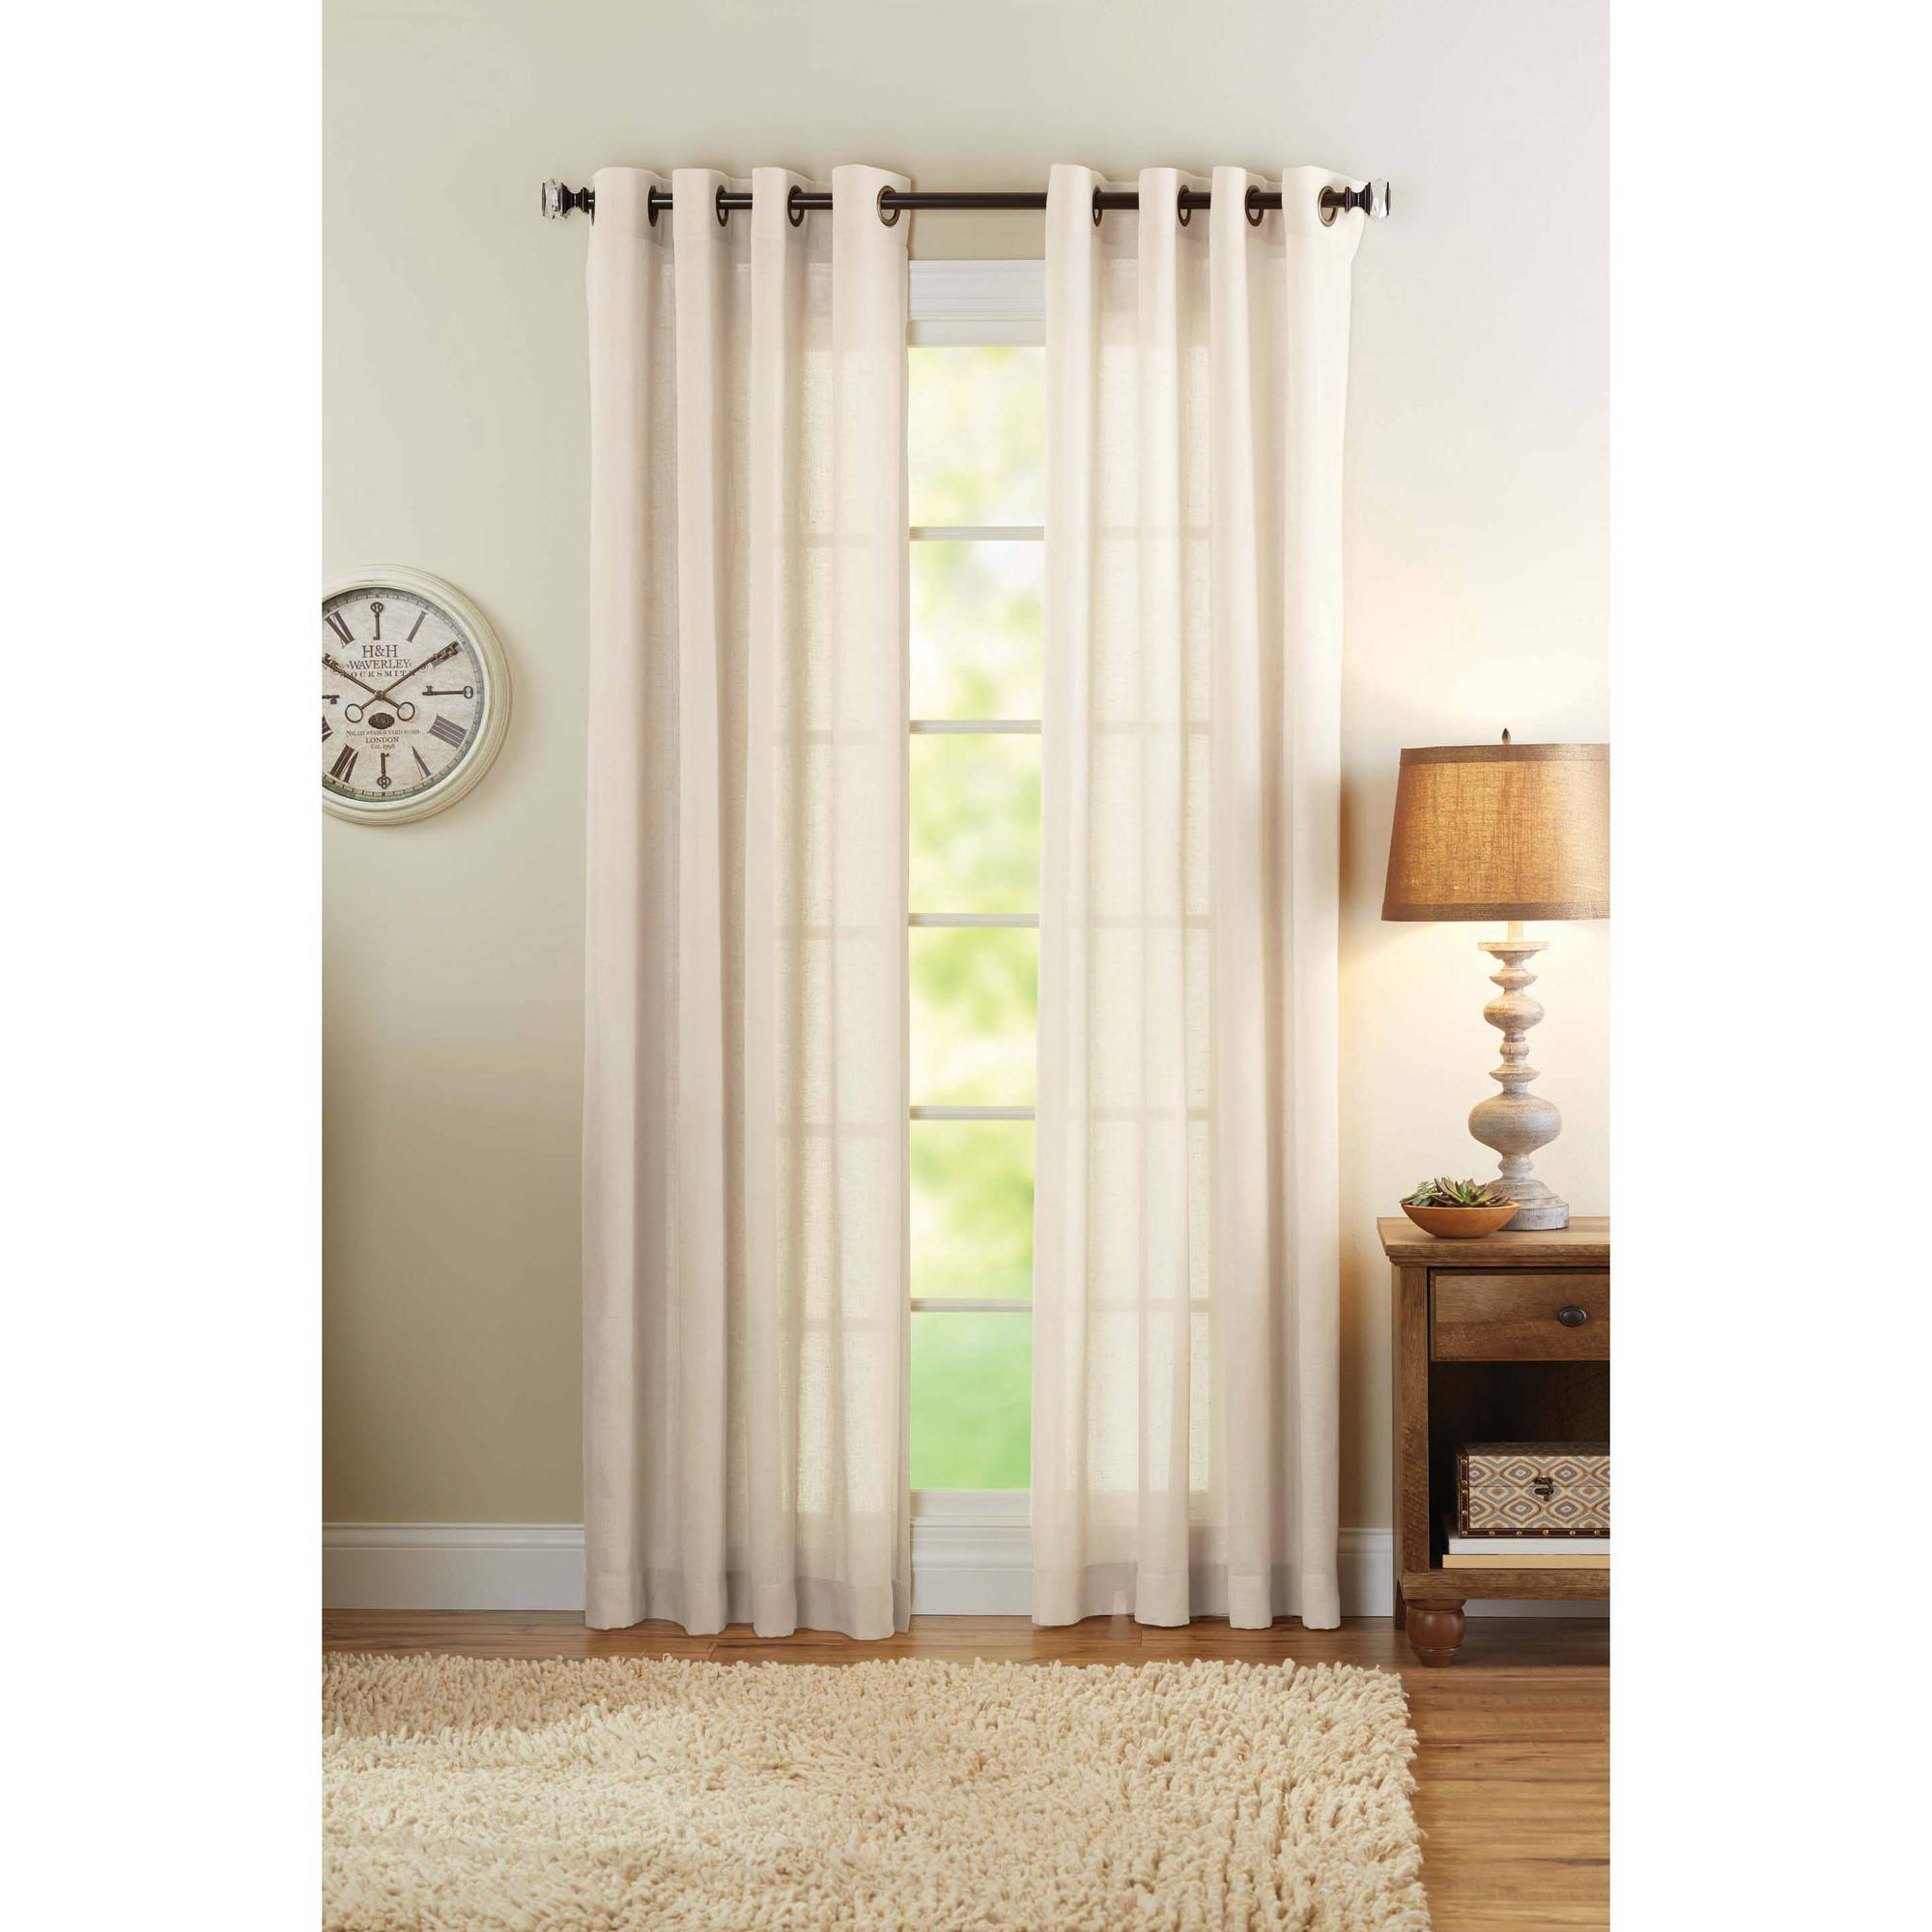 Better Homes And Gardens Semi Sheer Grommet Curtain Panel, Bleached Linen